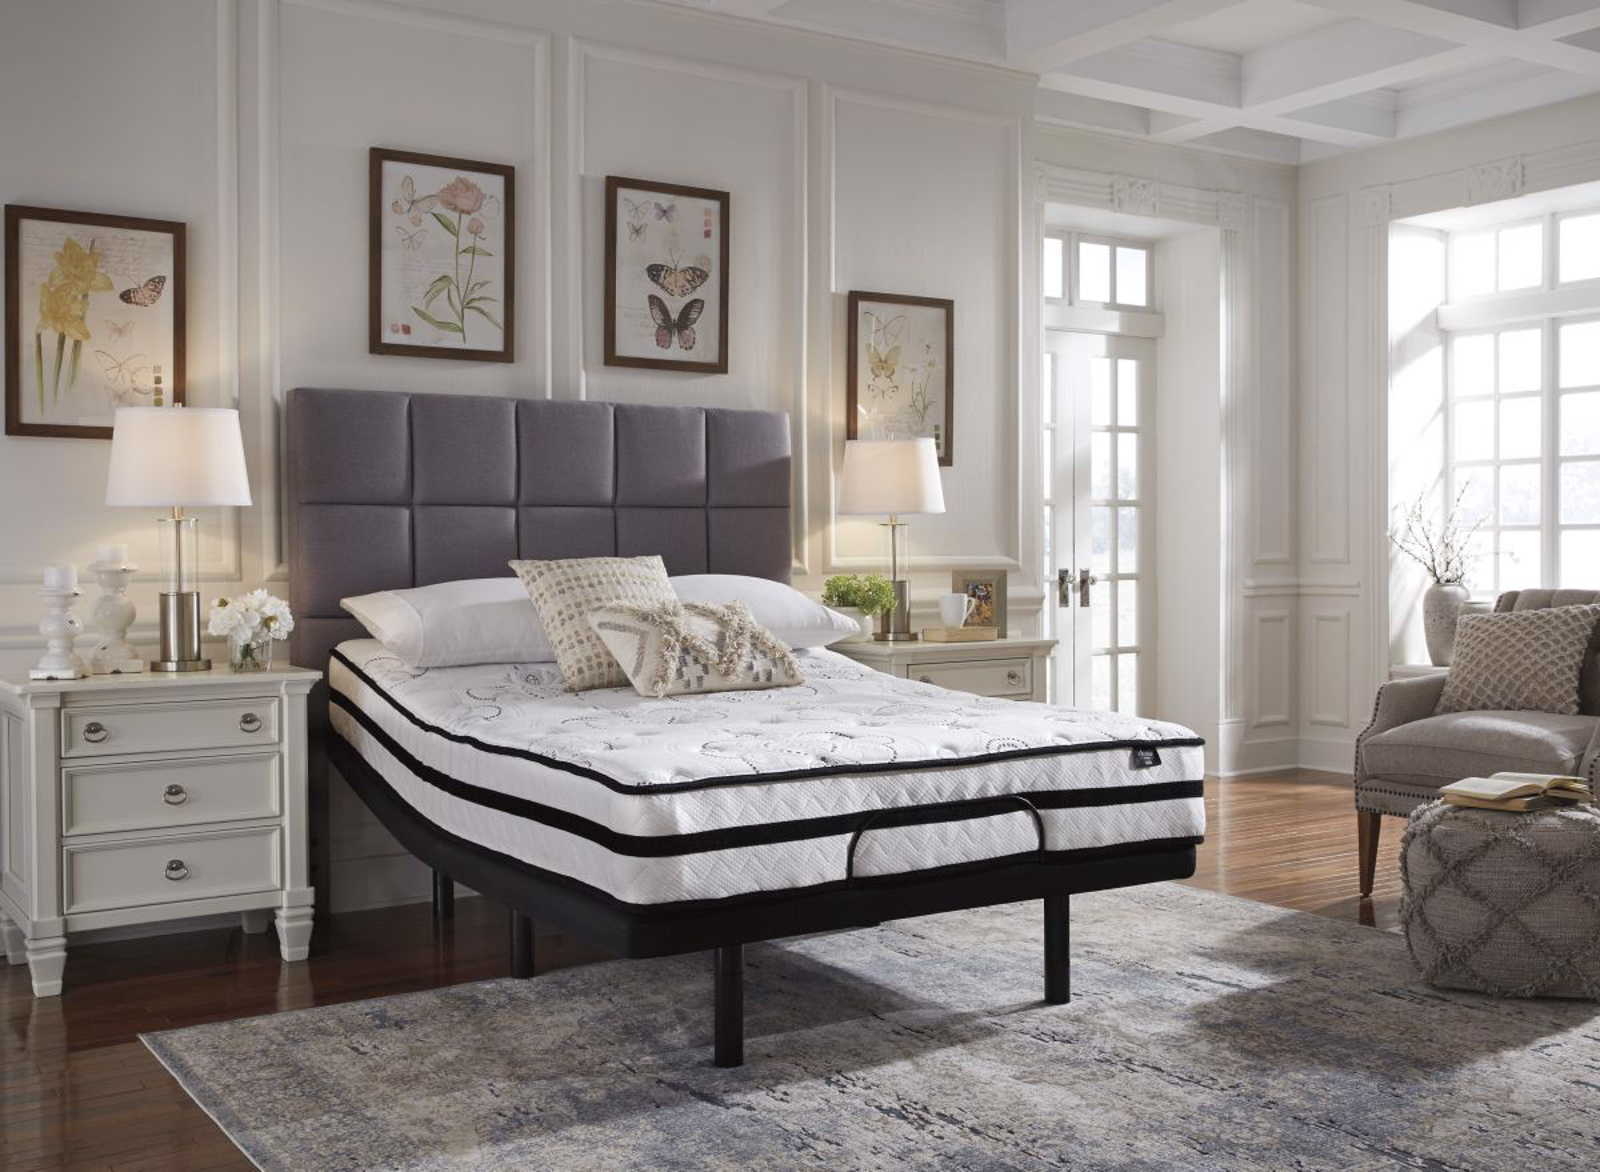 Picture of Chime 10in Hybrid Queen Mattress & Powerbase